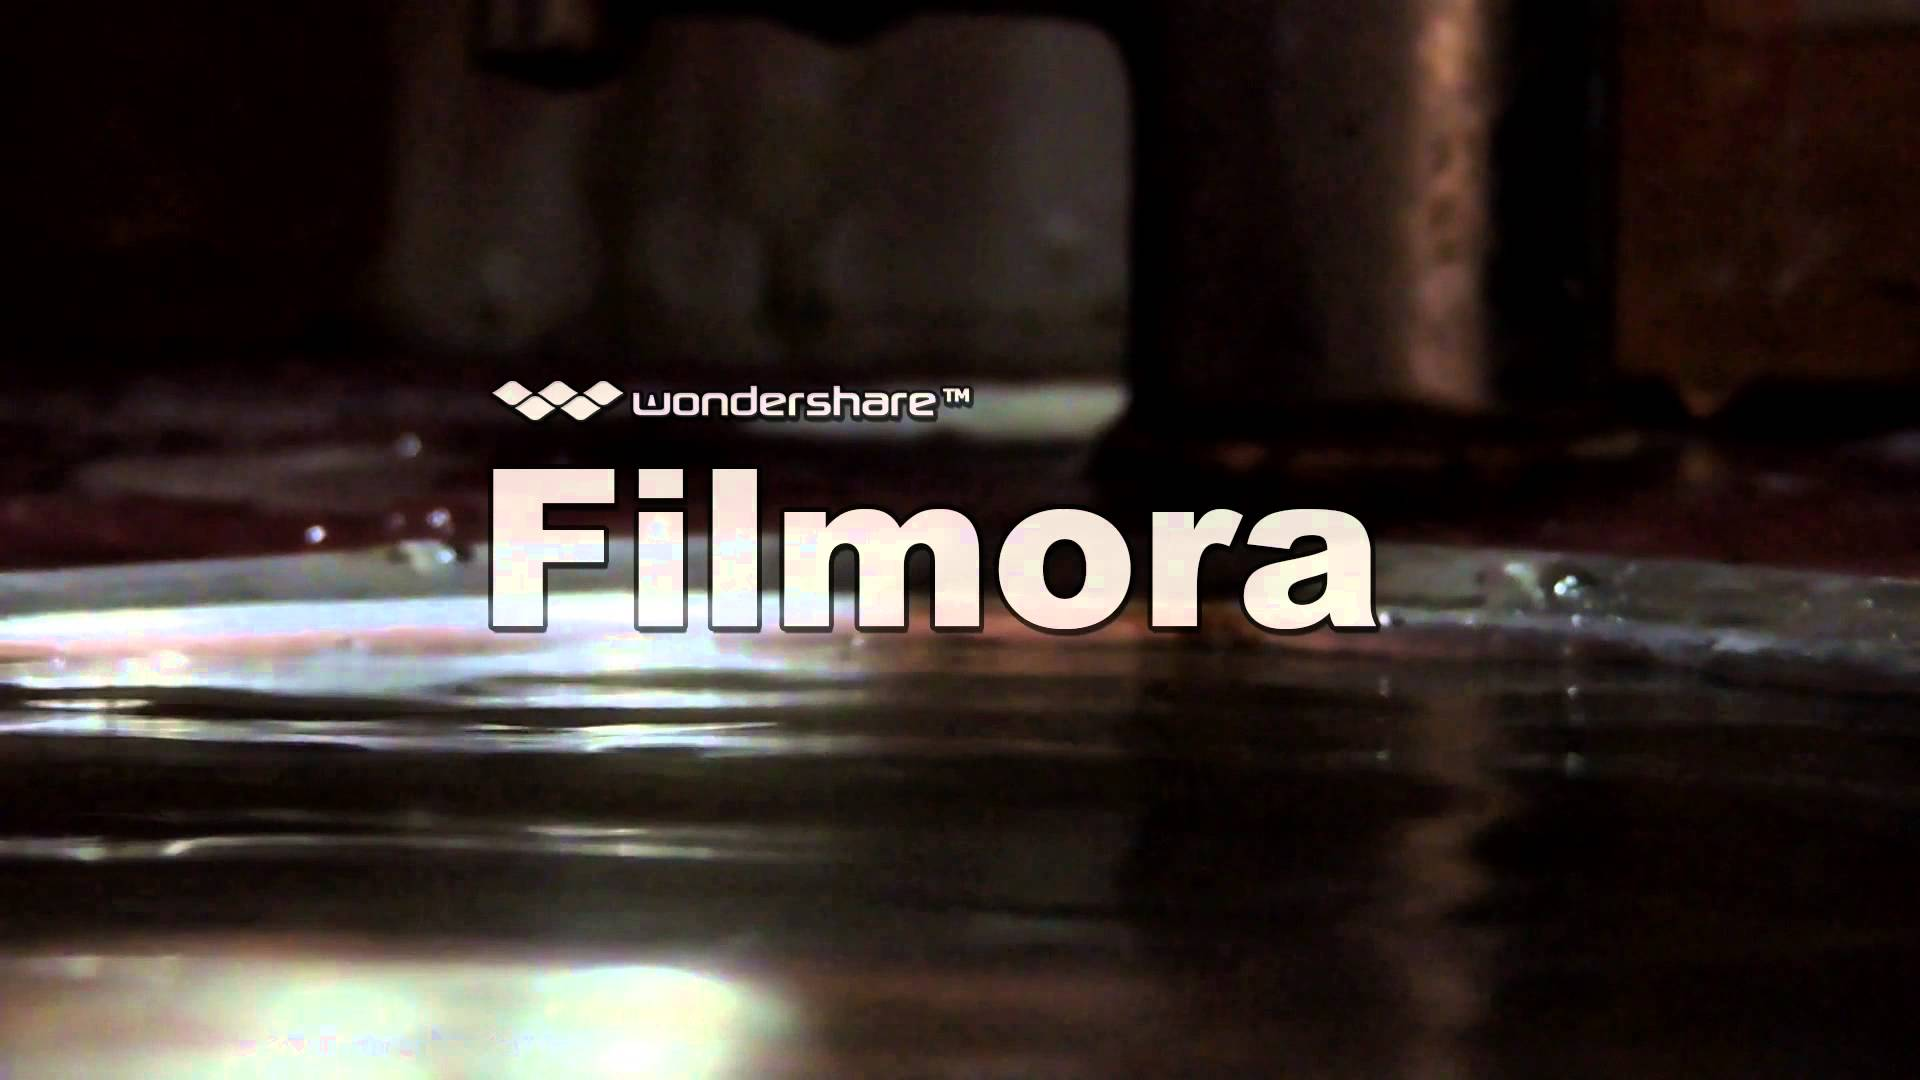 Wondershare Video Editor is veranderd in Filmora